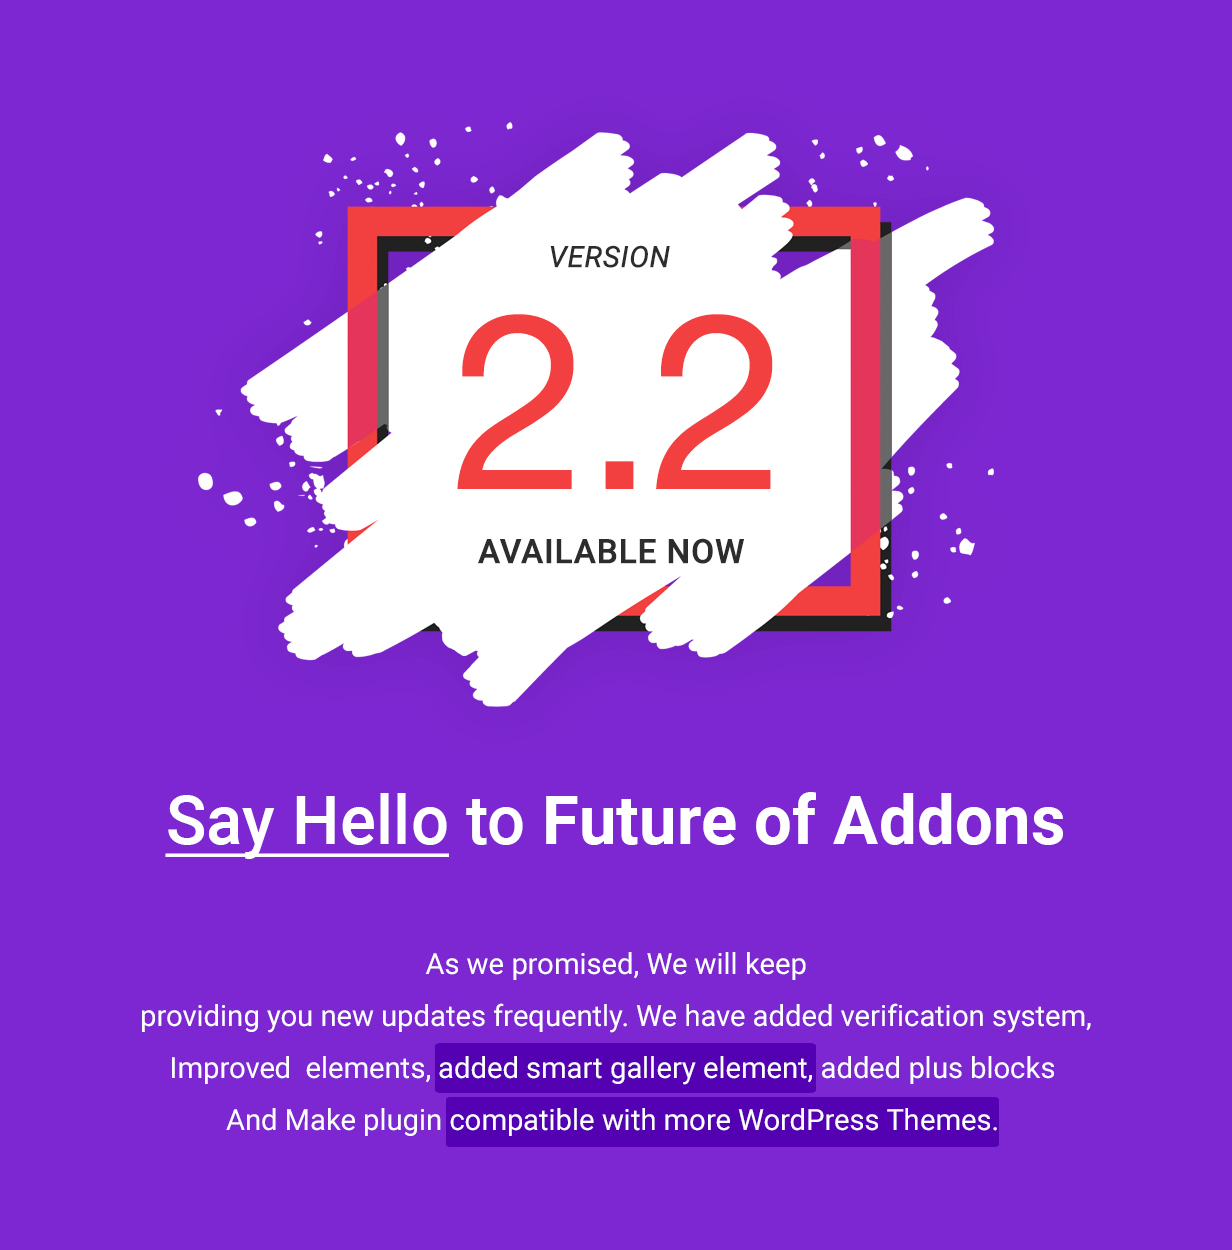 ThePlus Addons for WPBakery Page Builder (formerly Visual Composer) | Prosyscom Tech 2